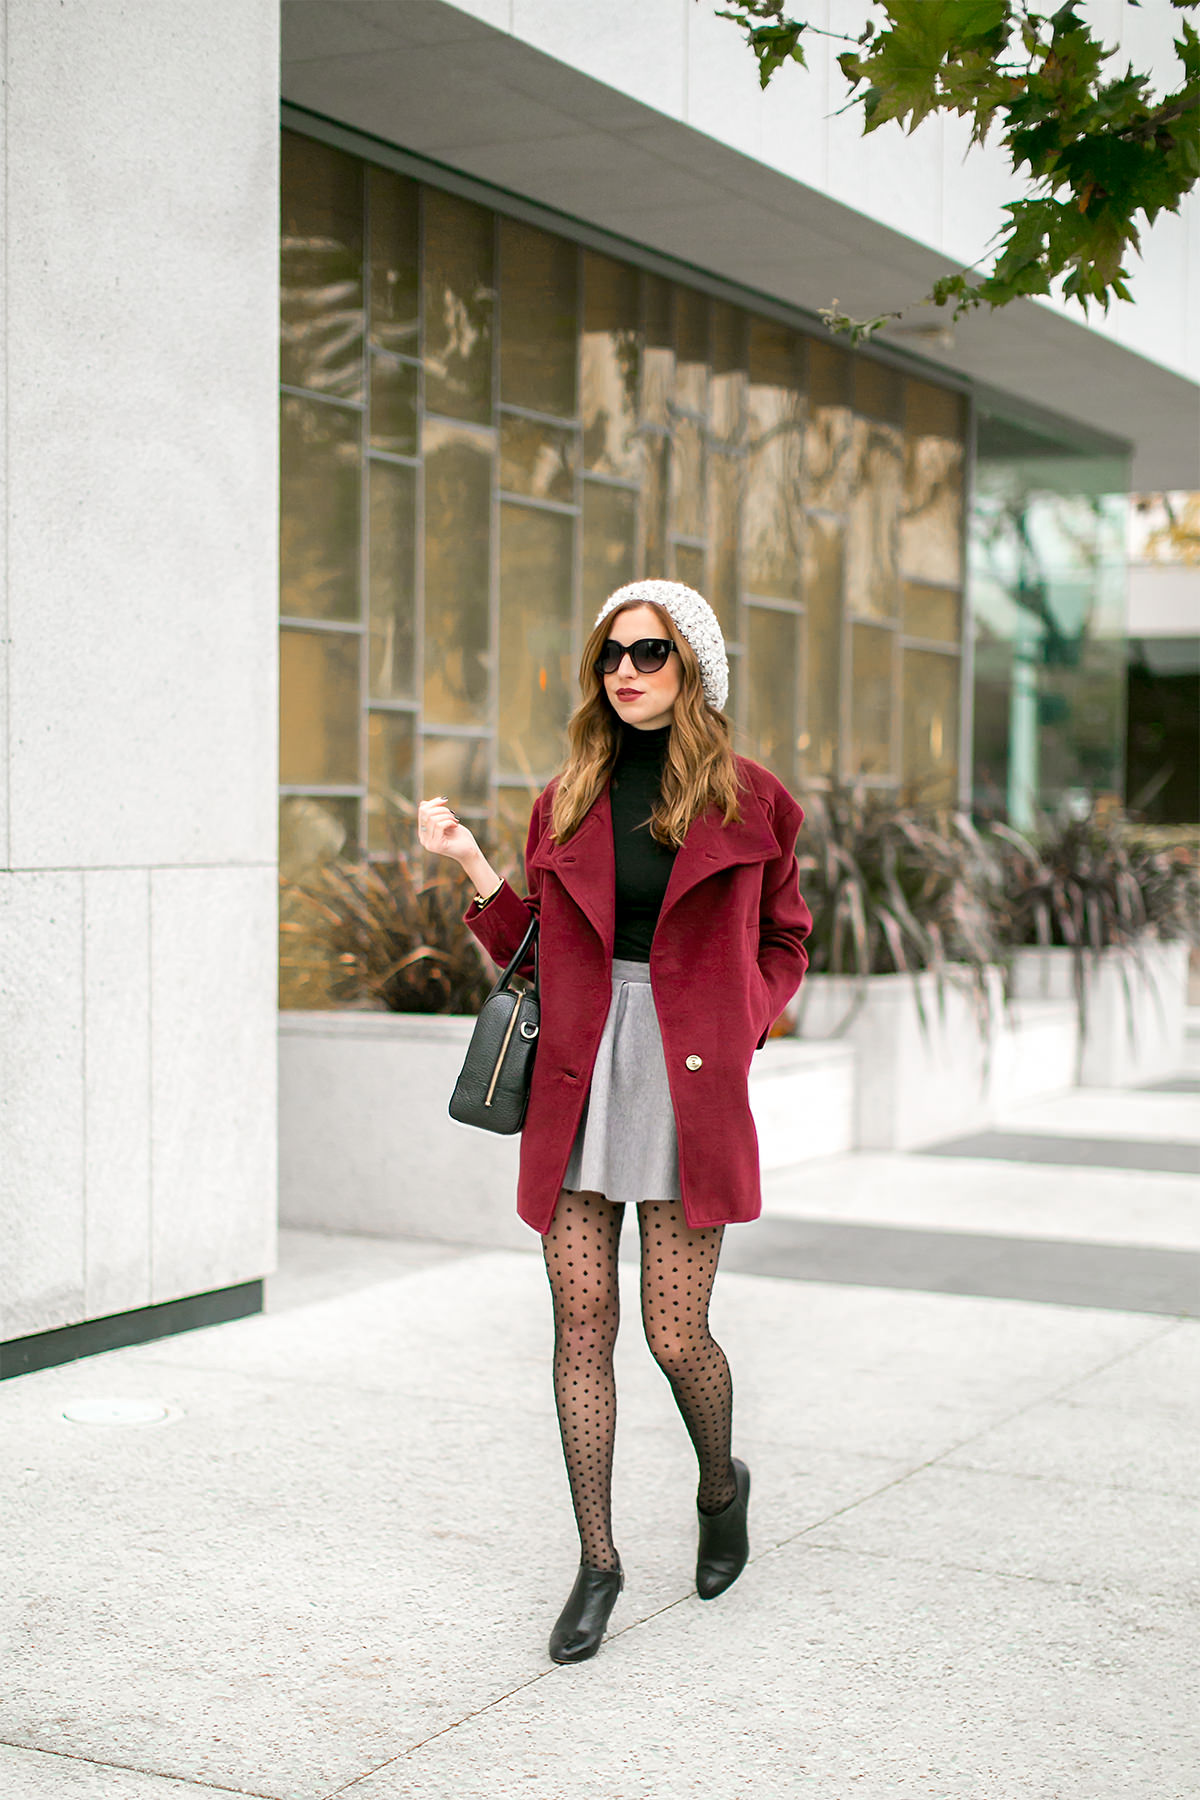 Patterned Tights And Leggings Stylish Combo For Winter